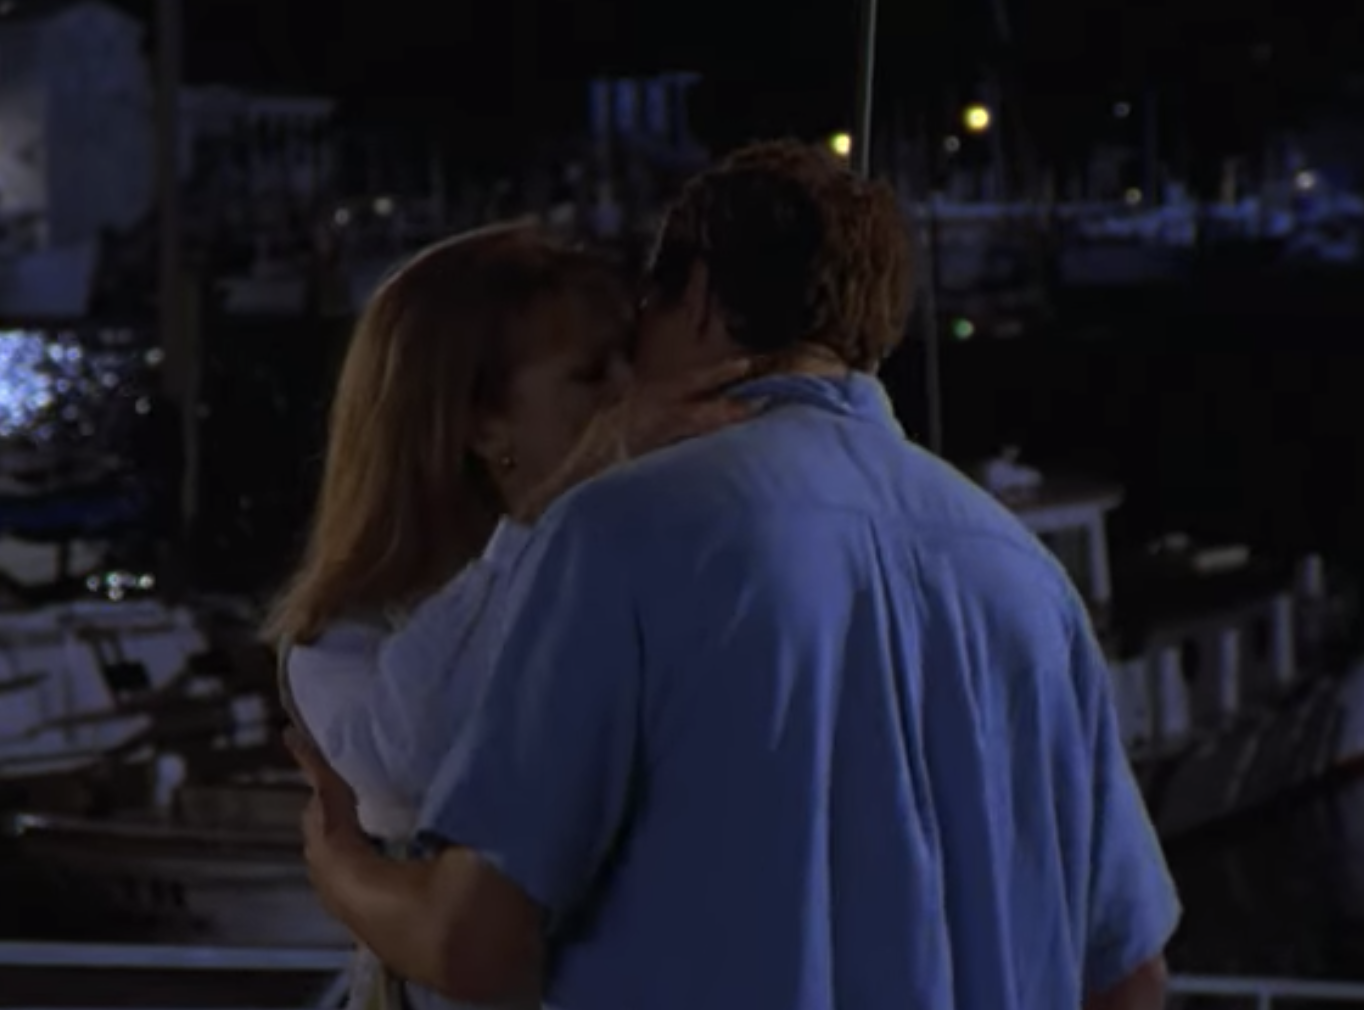 Pacey and Tamara kissing on a dock.